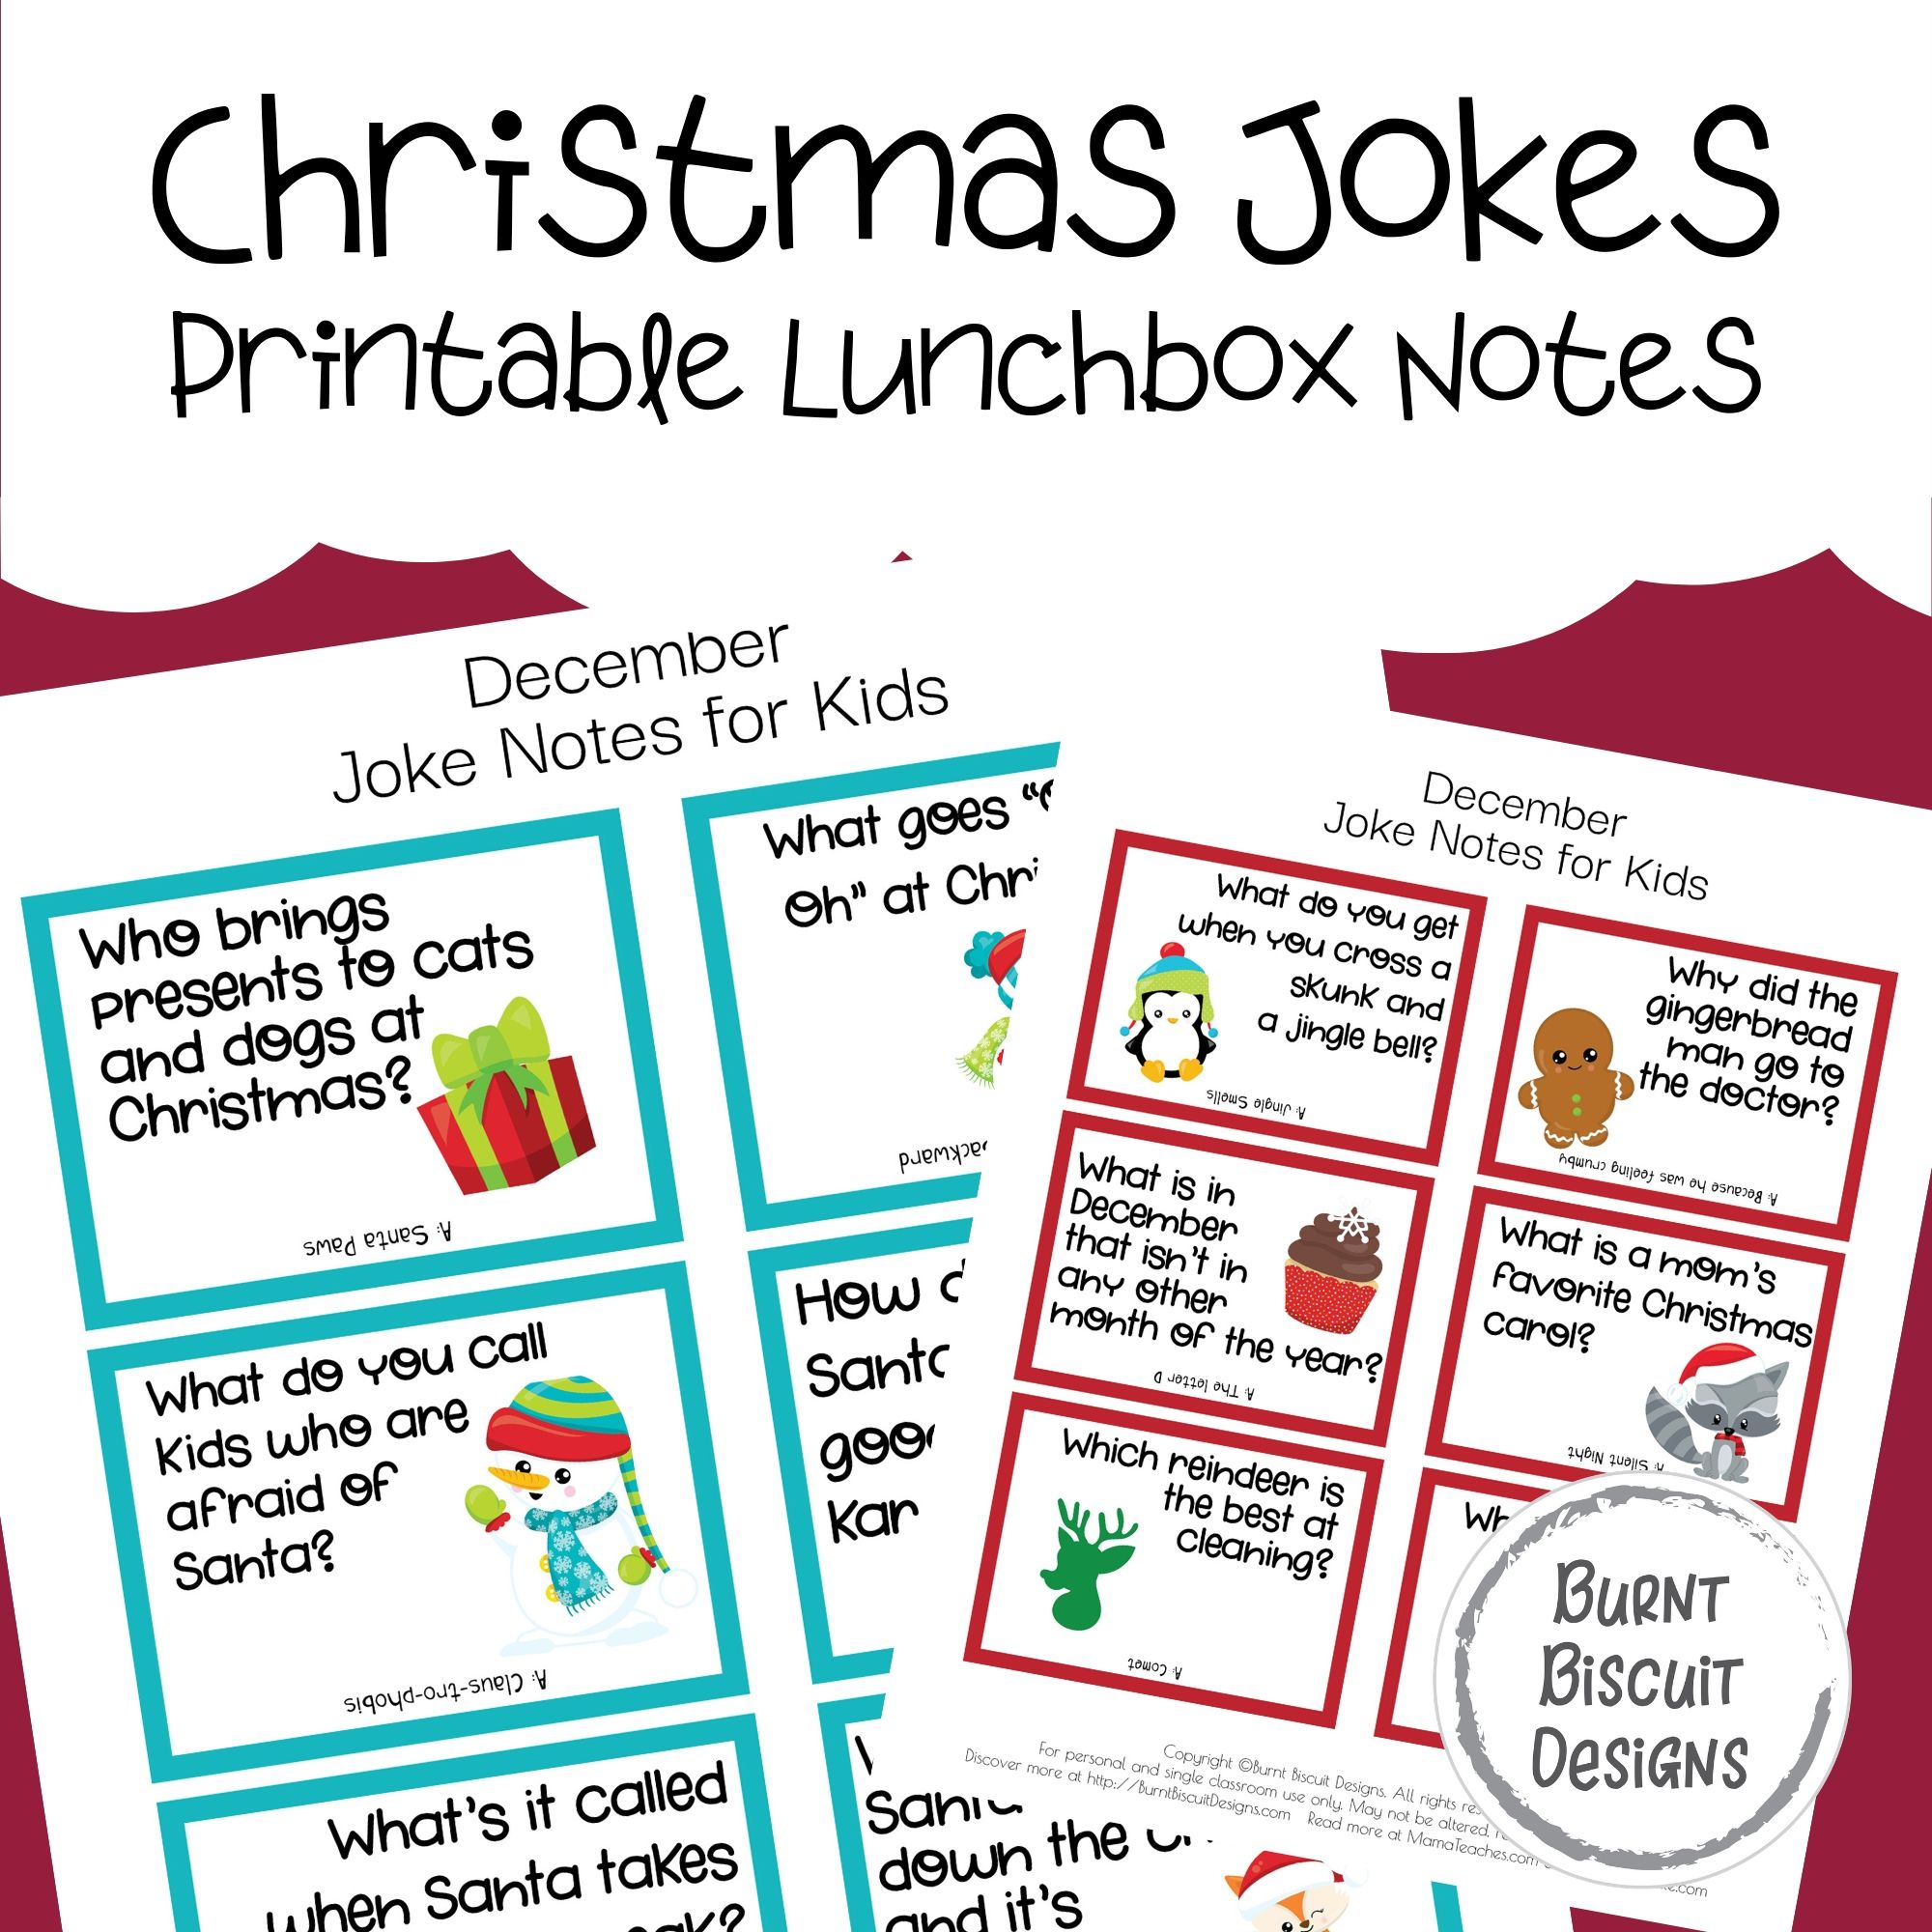 Christmas Jokes Lunchbox Notes